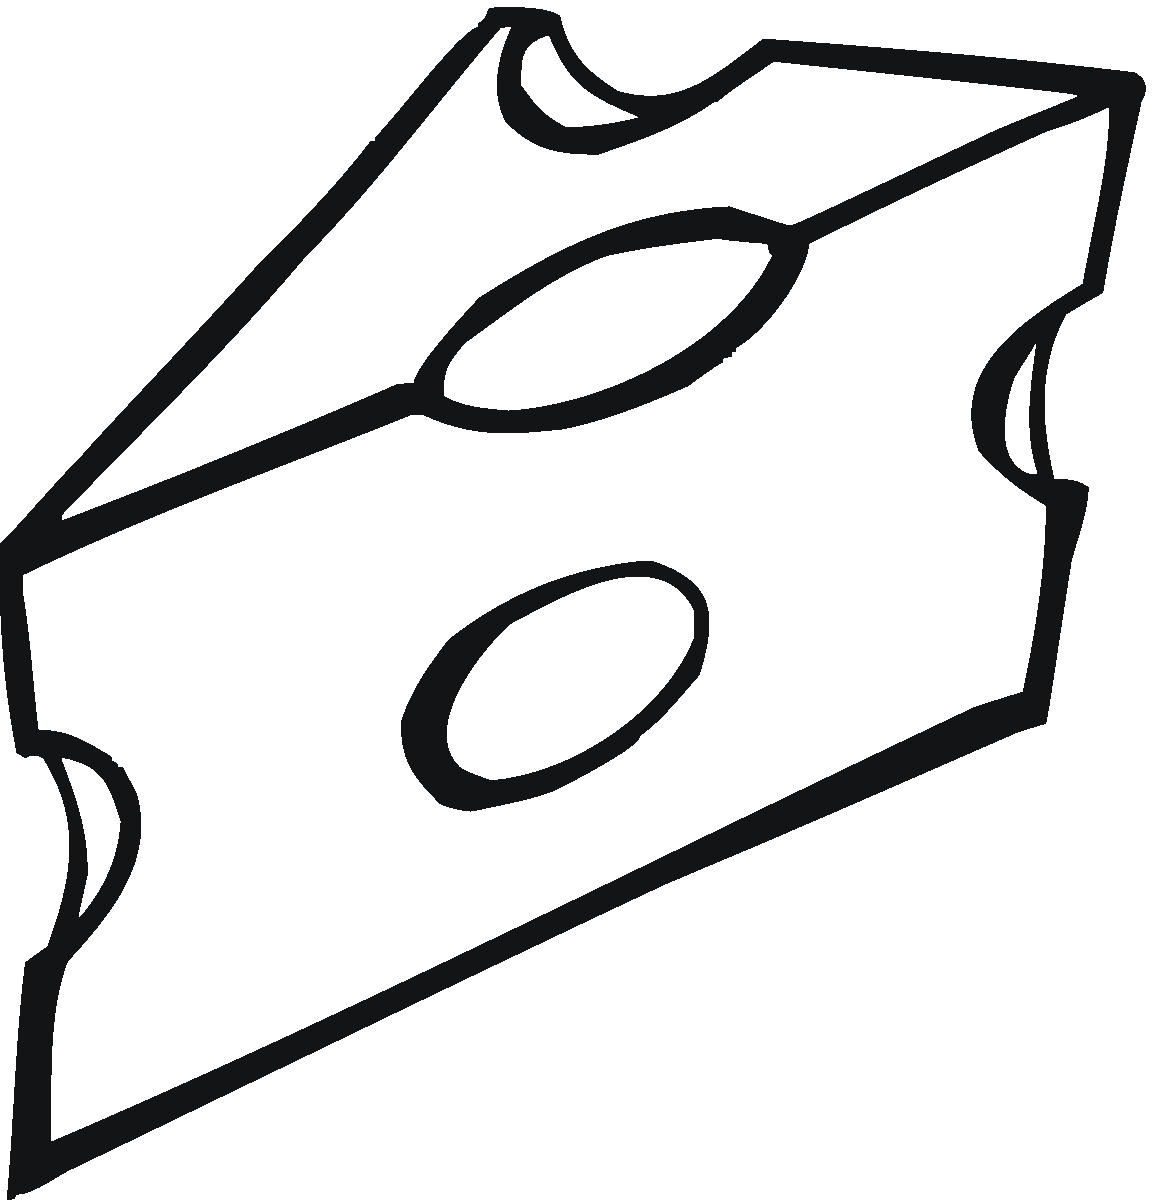 Swiss cheese black and white clipart banner royalty free Free Swiss Cheese Clipart, Download Free Clip Art, Free Clip ... banner royalty free